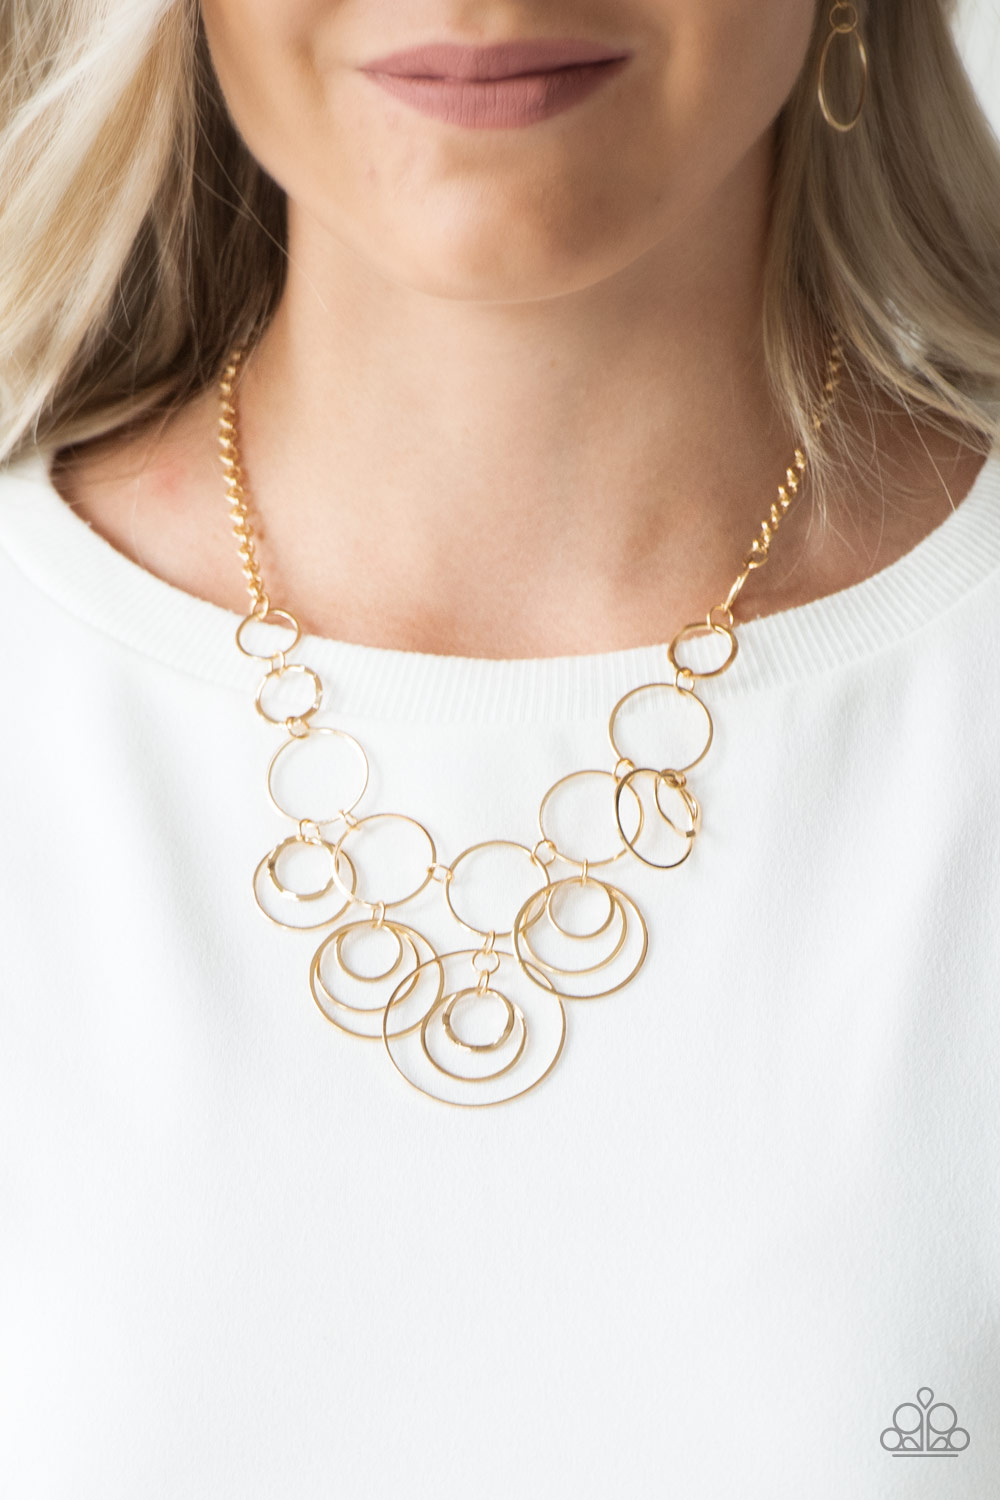 Gold Necklace with linking circles by Paparazzi $5.00 www.my-bling.com